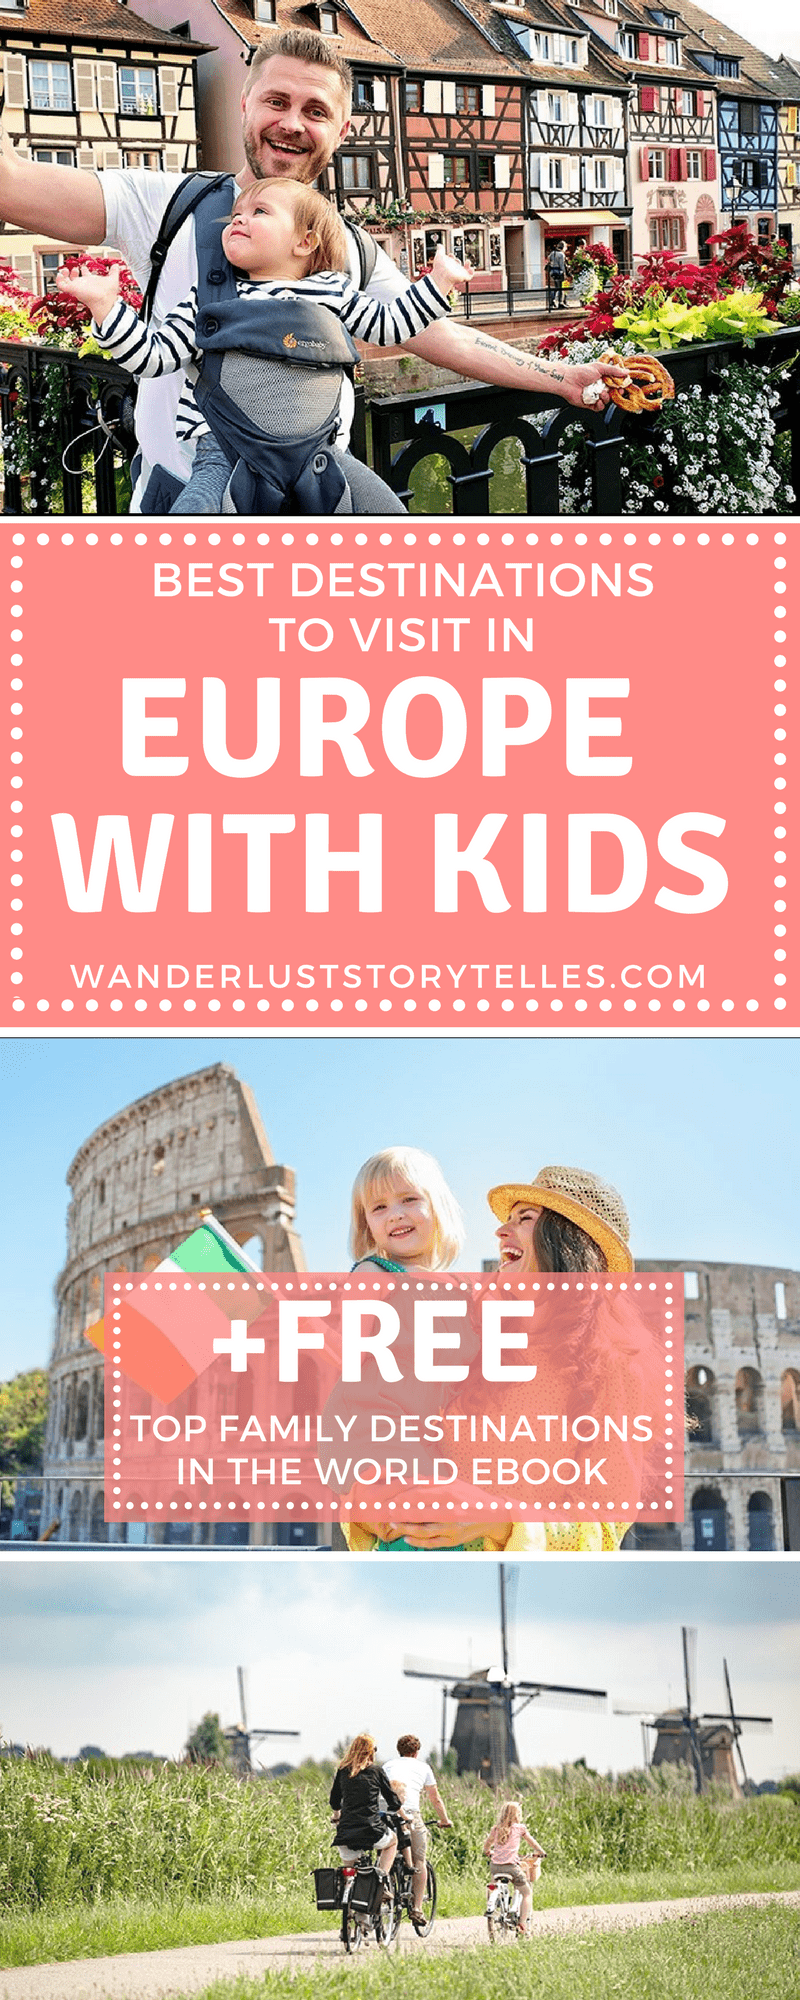 12 Of the Absolute Best Places to Travel in Europe With Kids -  11 of the best destinations to visit in Europe with kids!  - #Absolute #Europe #FamilyTravelbudget #FamilyTraveldestinations #FamilyTravelgoals #FamilyTravelillustration #FamilyTraveljapan #FamilyTravelkids #FamilyTravelphotography #FamilyTravelpictures #FamilyTravelquotes #FamilyTraveltips #kids #places #Travel